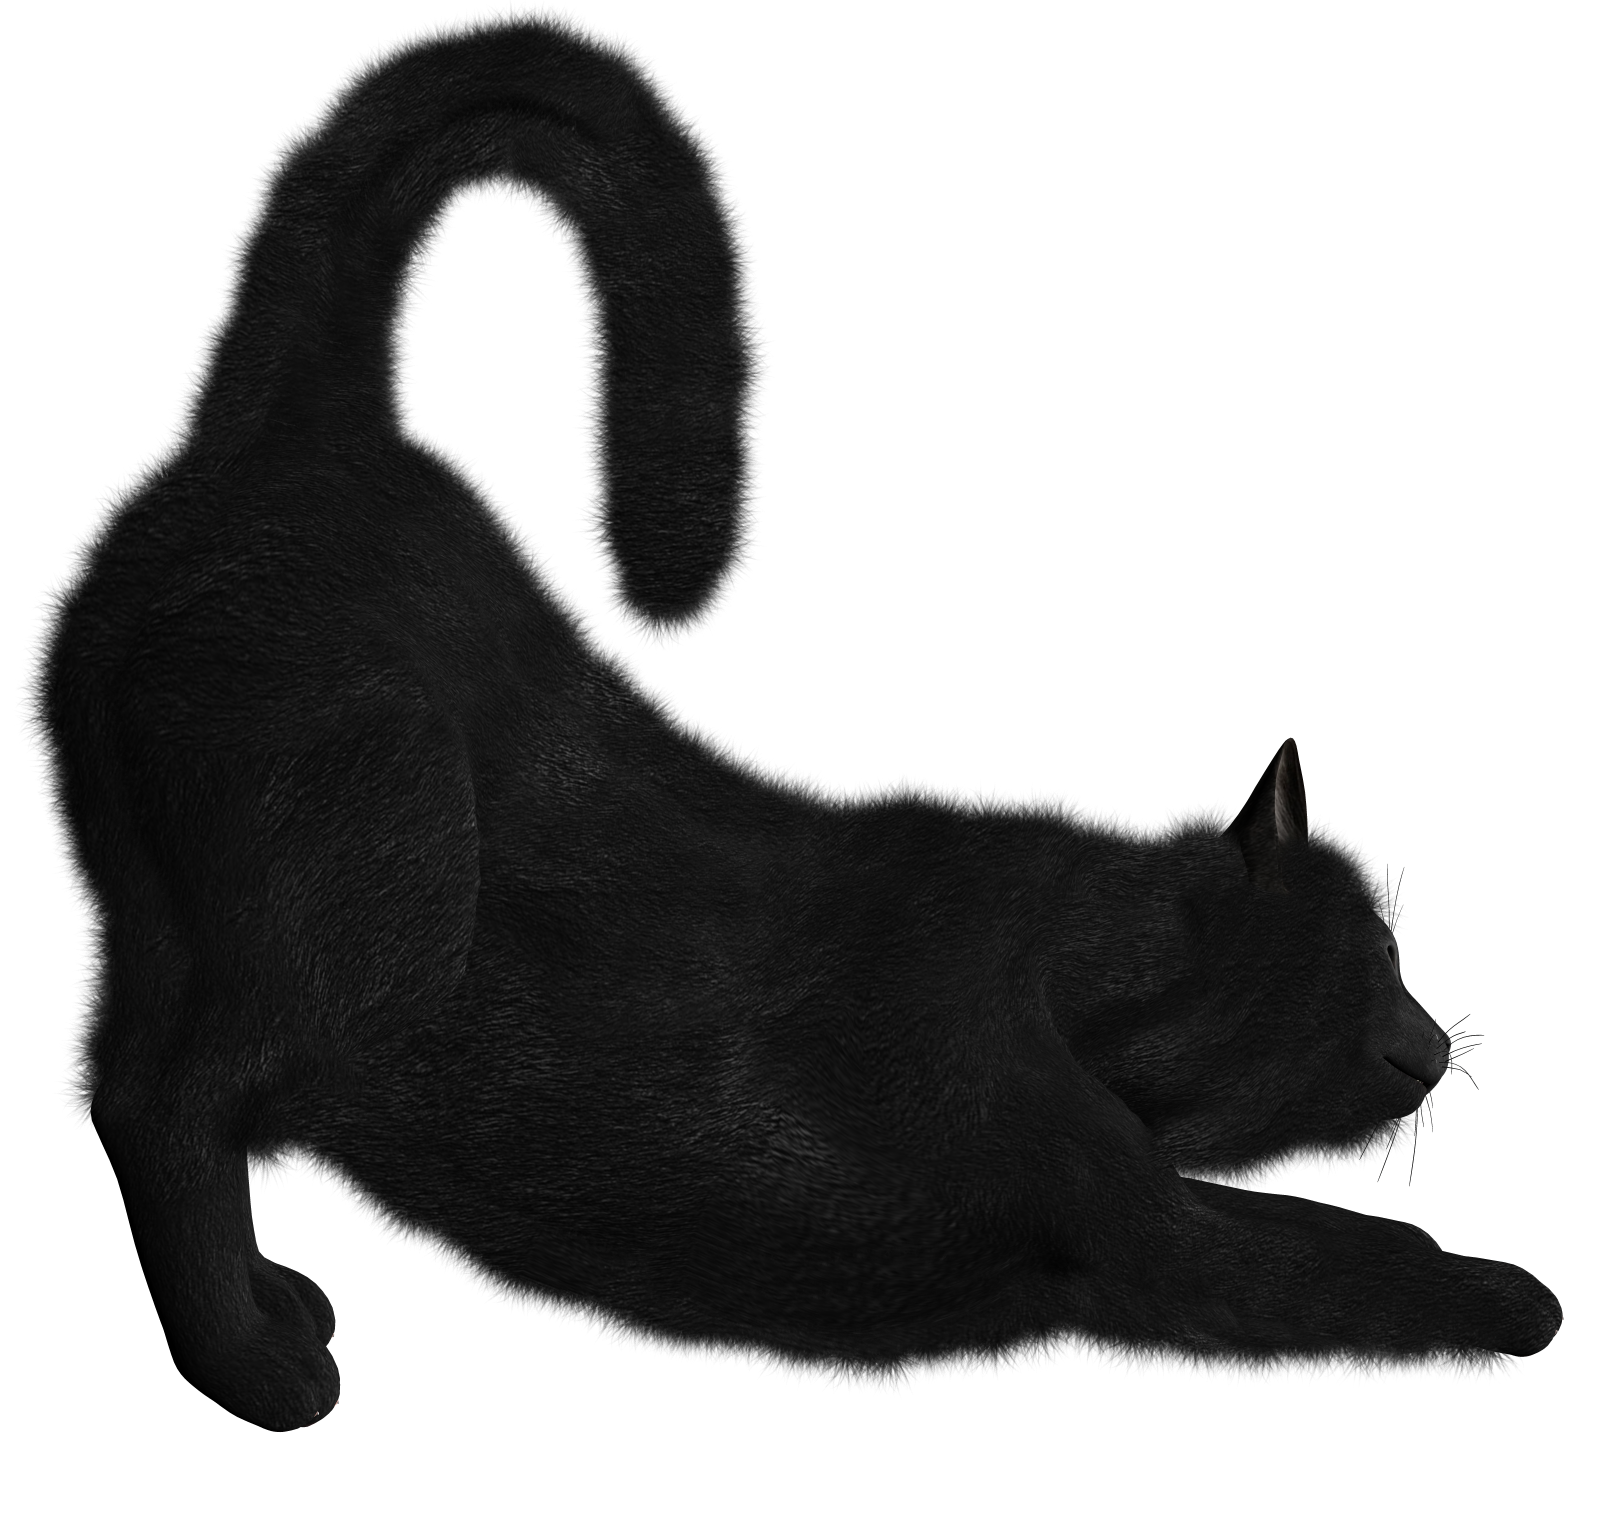 Black kitten png. Cats free images download